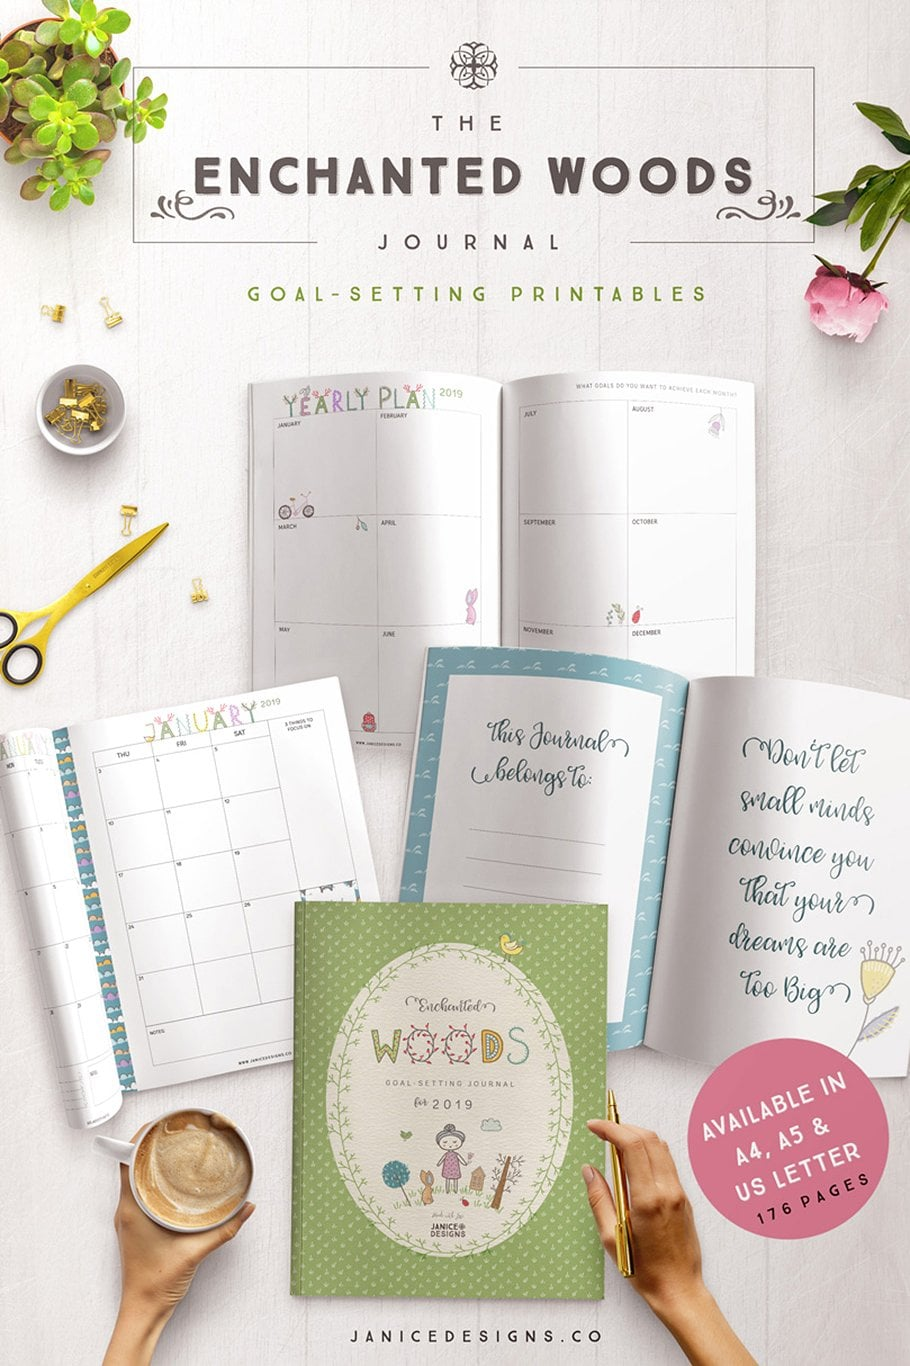 The Enchanted Woods Journal (3 sizes) - $35 - enchanted woods journal cover page2